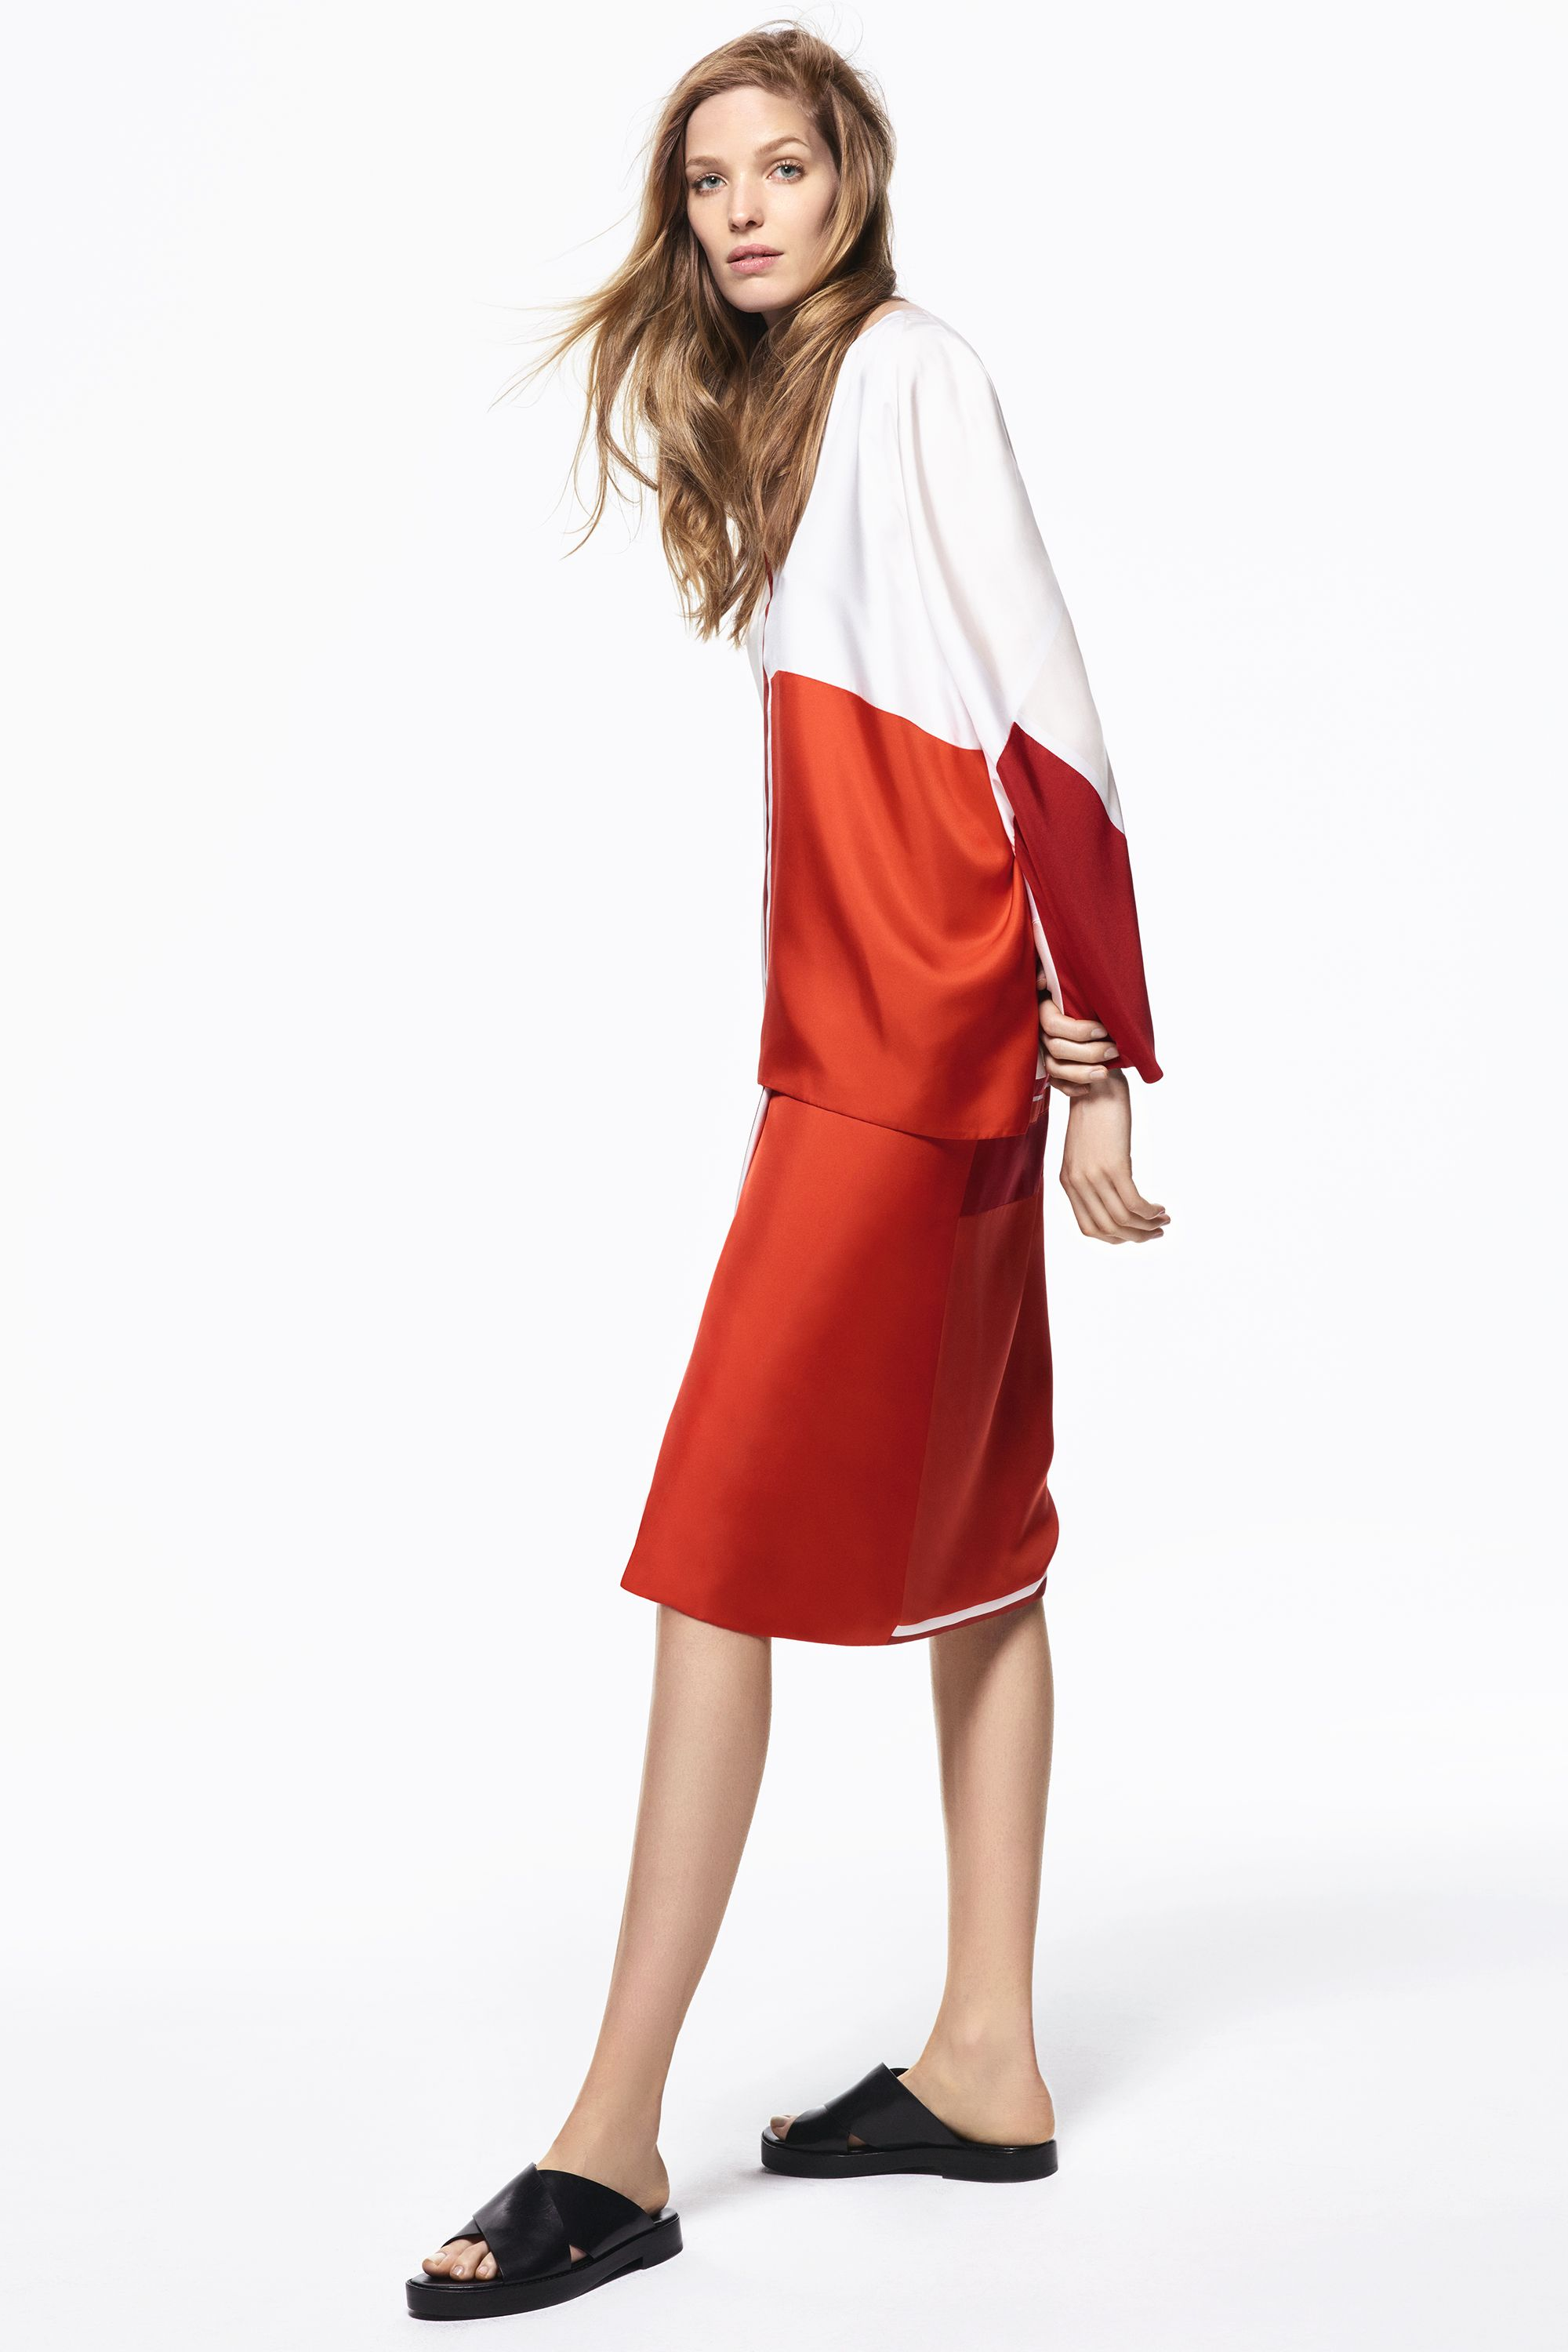 "<p>Play up silky separates by choosing ones in poppy hues.</p><p><strong>Hermès </strong>blouse and skirt, prices upon request, 800-441-4488&#x3B; <strong>Michael Kors </strong><span class=""redactor-invisible-space""><strong>Collection </strong><span class=""redactor-invisible-space"">sandals, $425, 866-709-KORS.</span></span></p>"